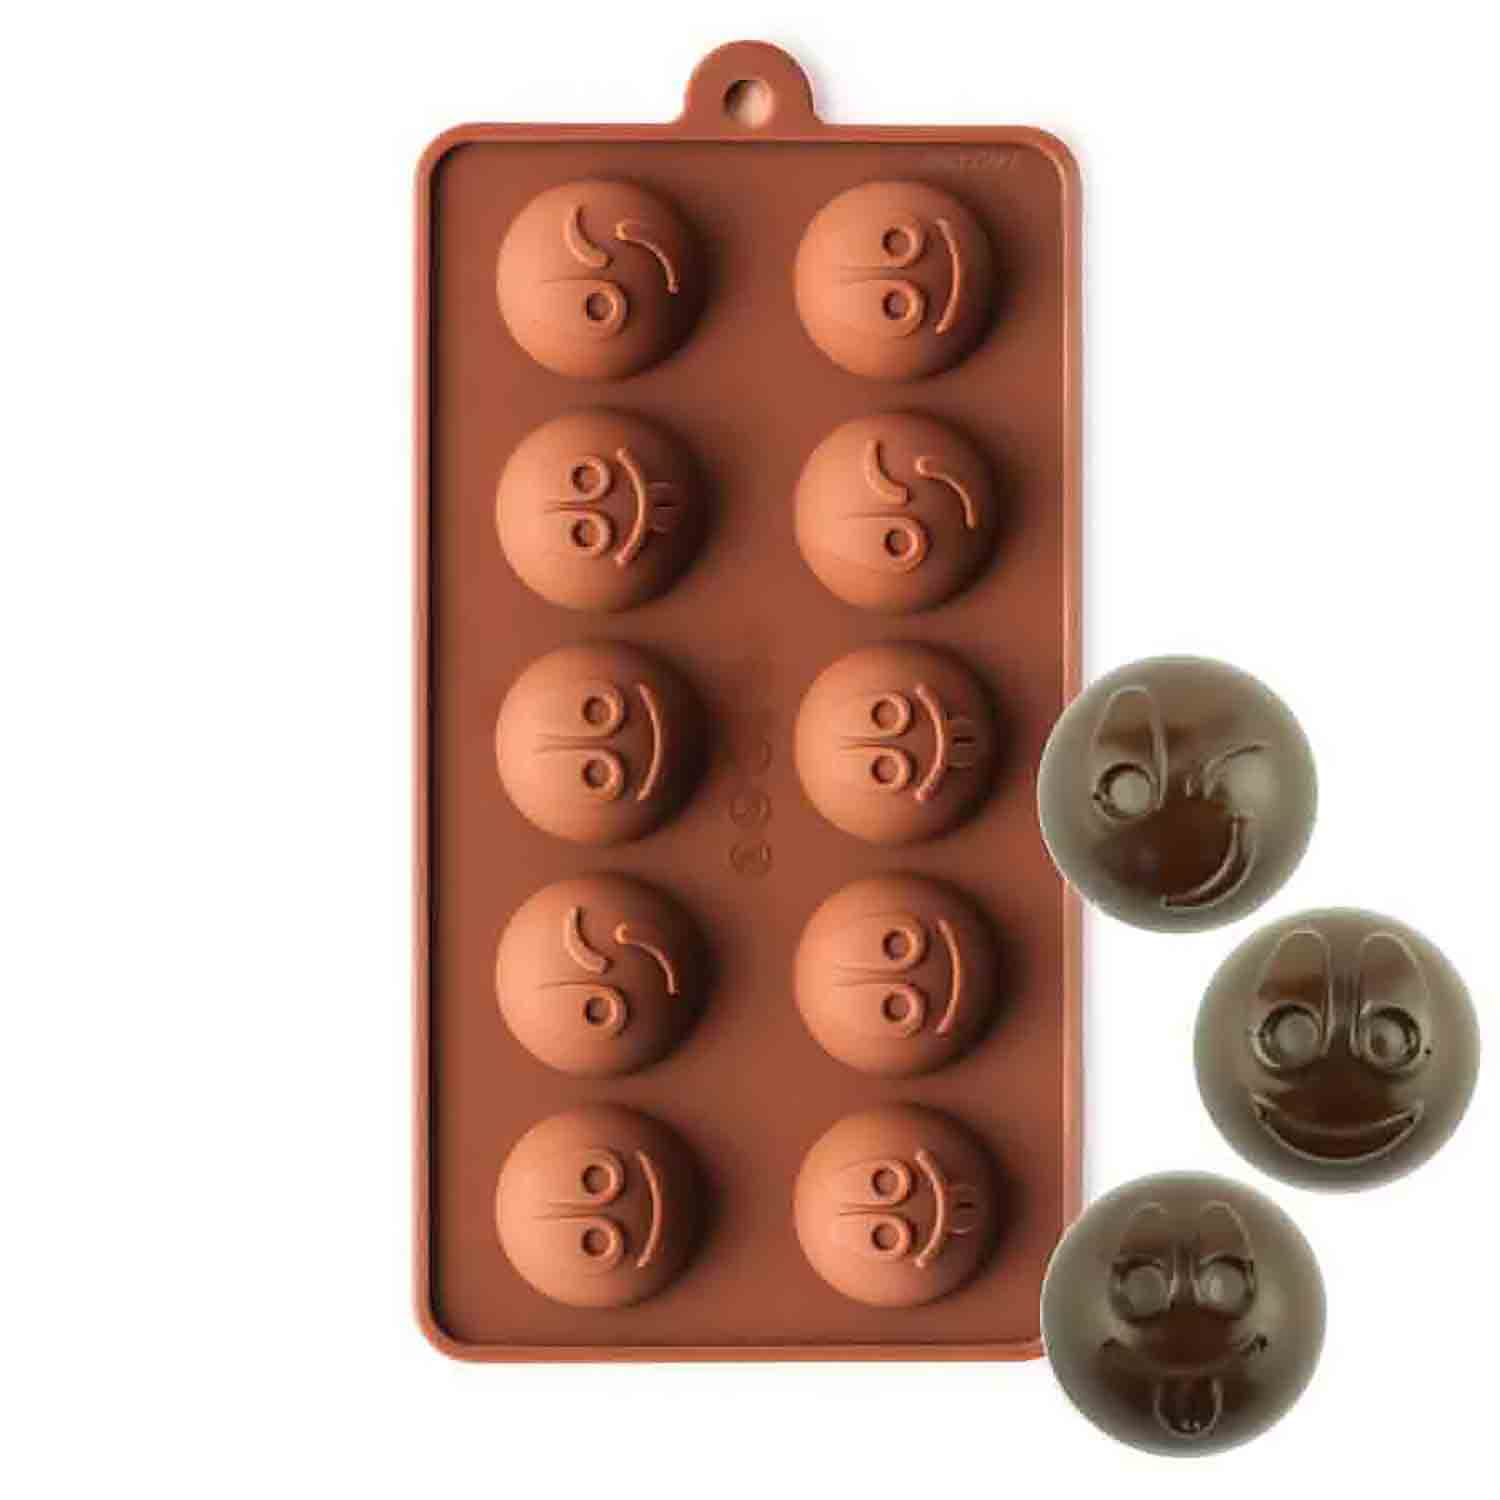 Happy Faces Silicone Chocolate Candy Mold